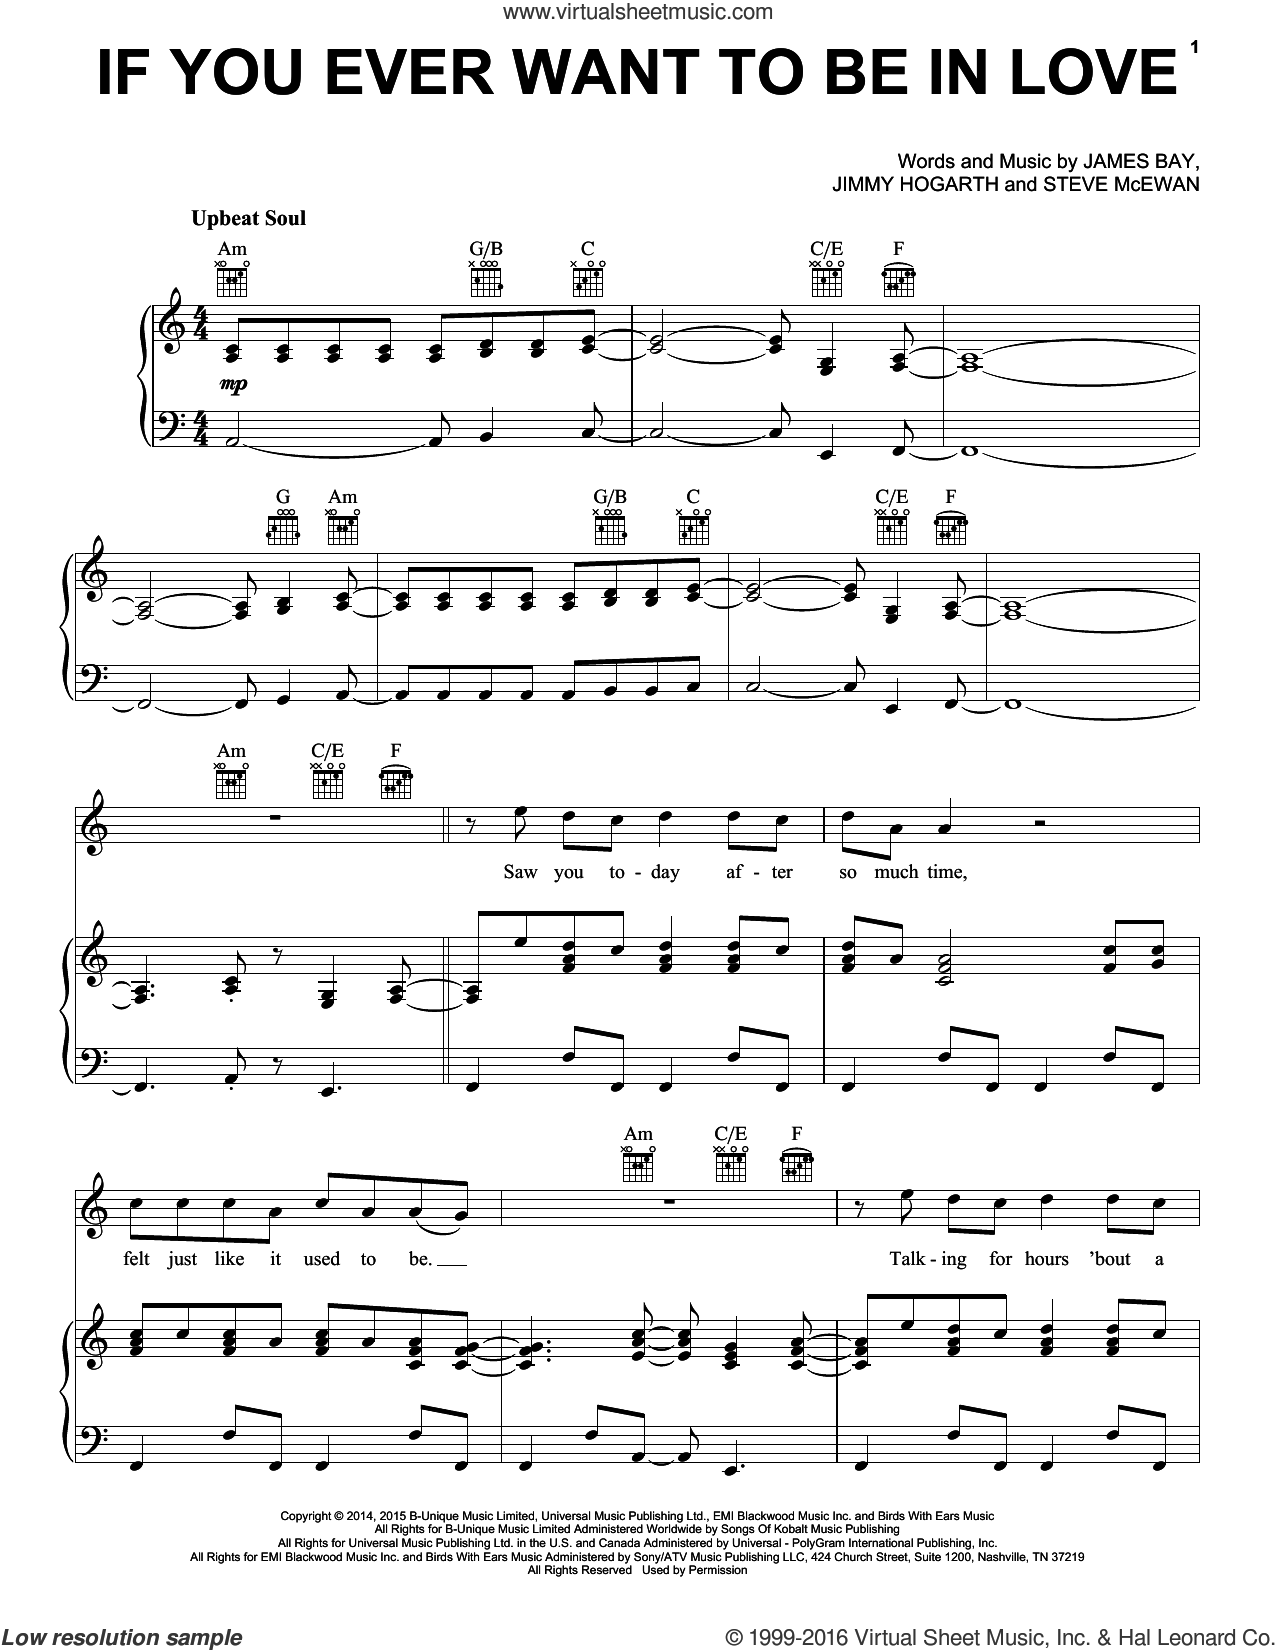 If You Ever Want To Be In Love sheet music for voice, piano or guitar by James Bay, James Hogarth and Steve McEwan, intermediate skill level